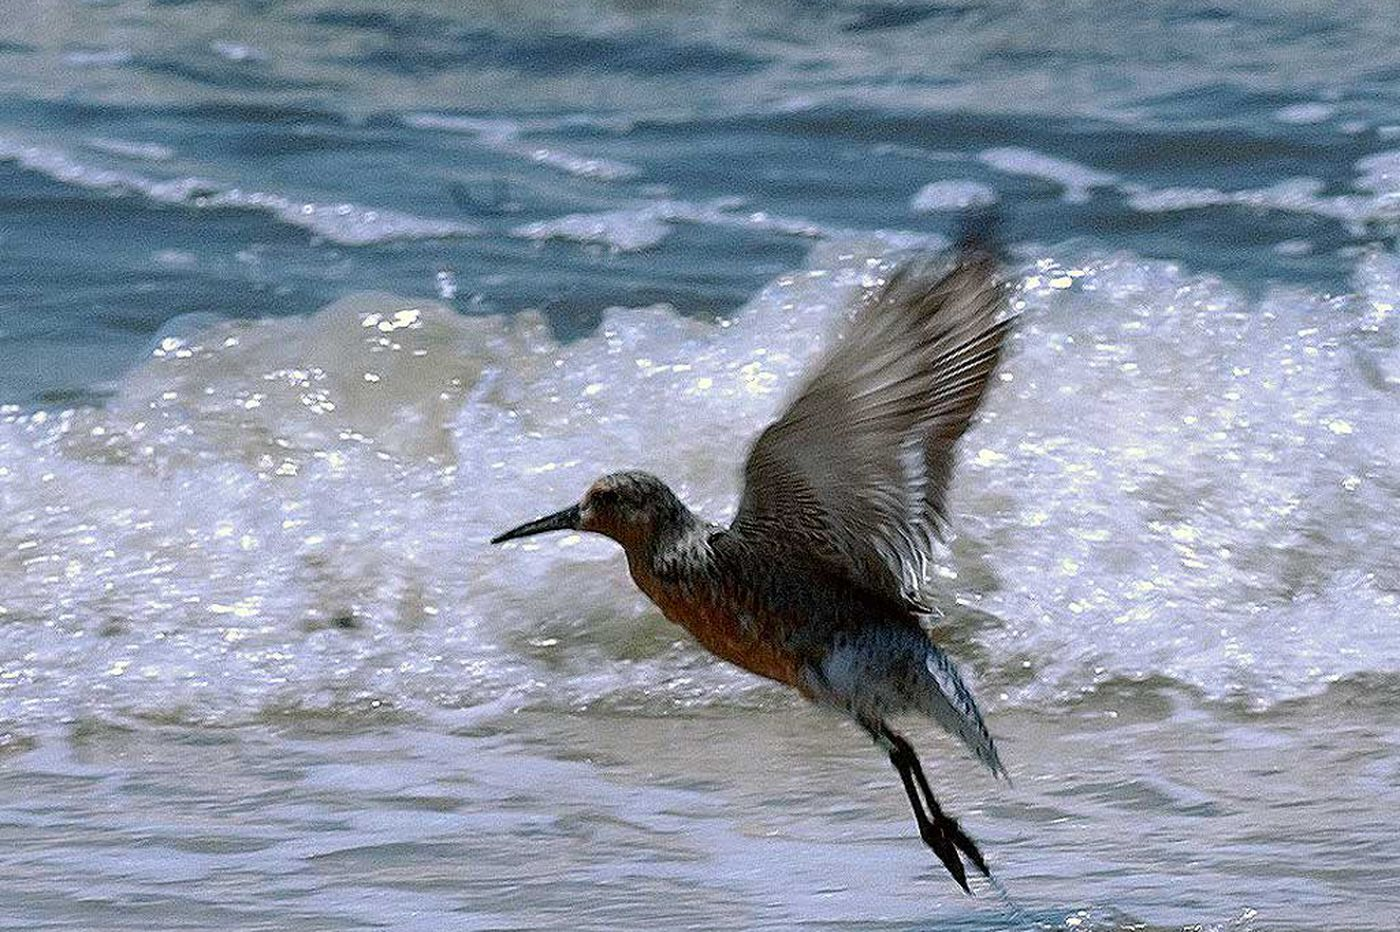 NJ Audubon says Red Knot will be listed as threatened